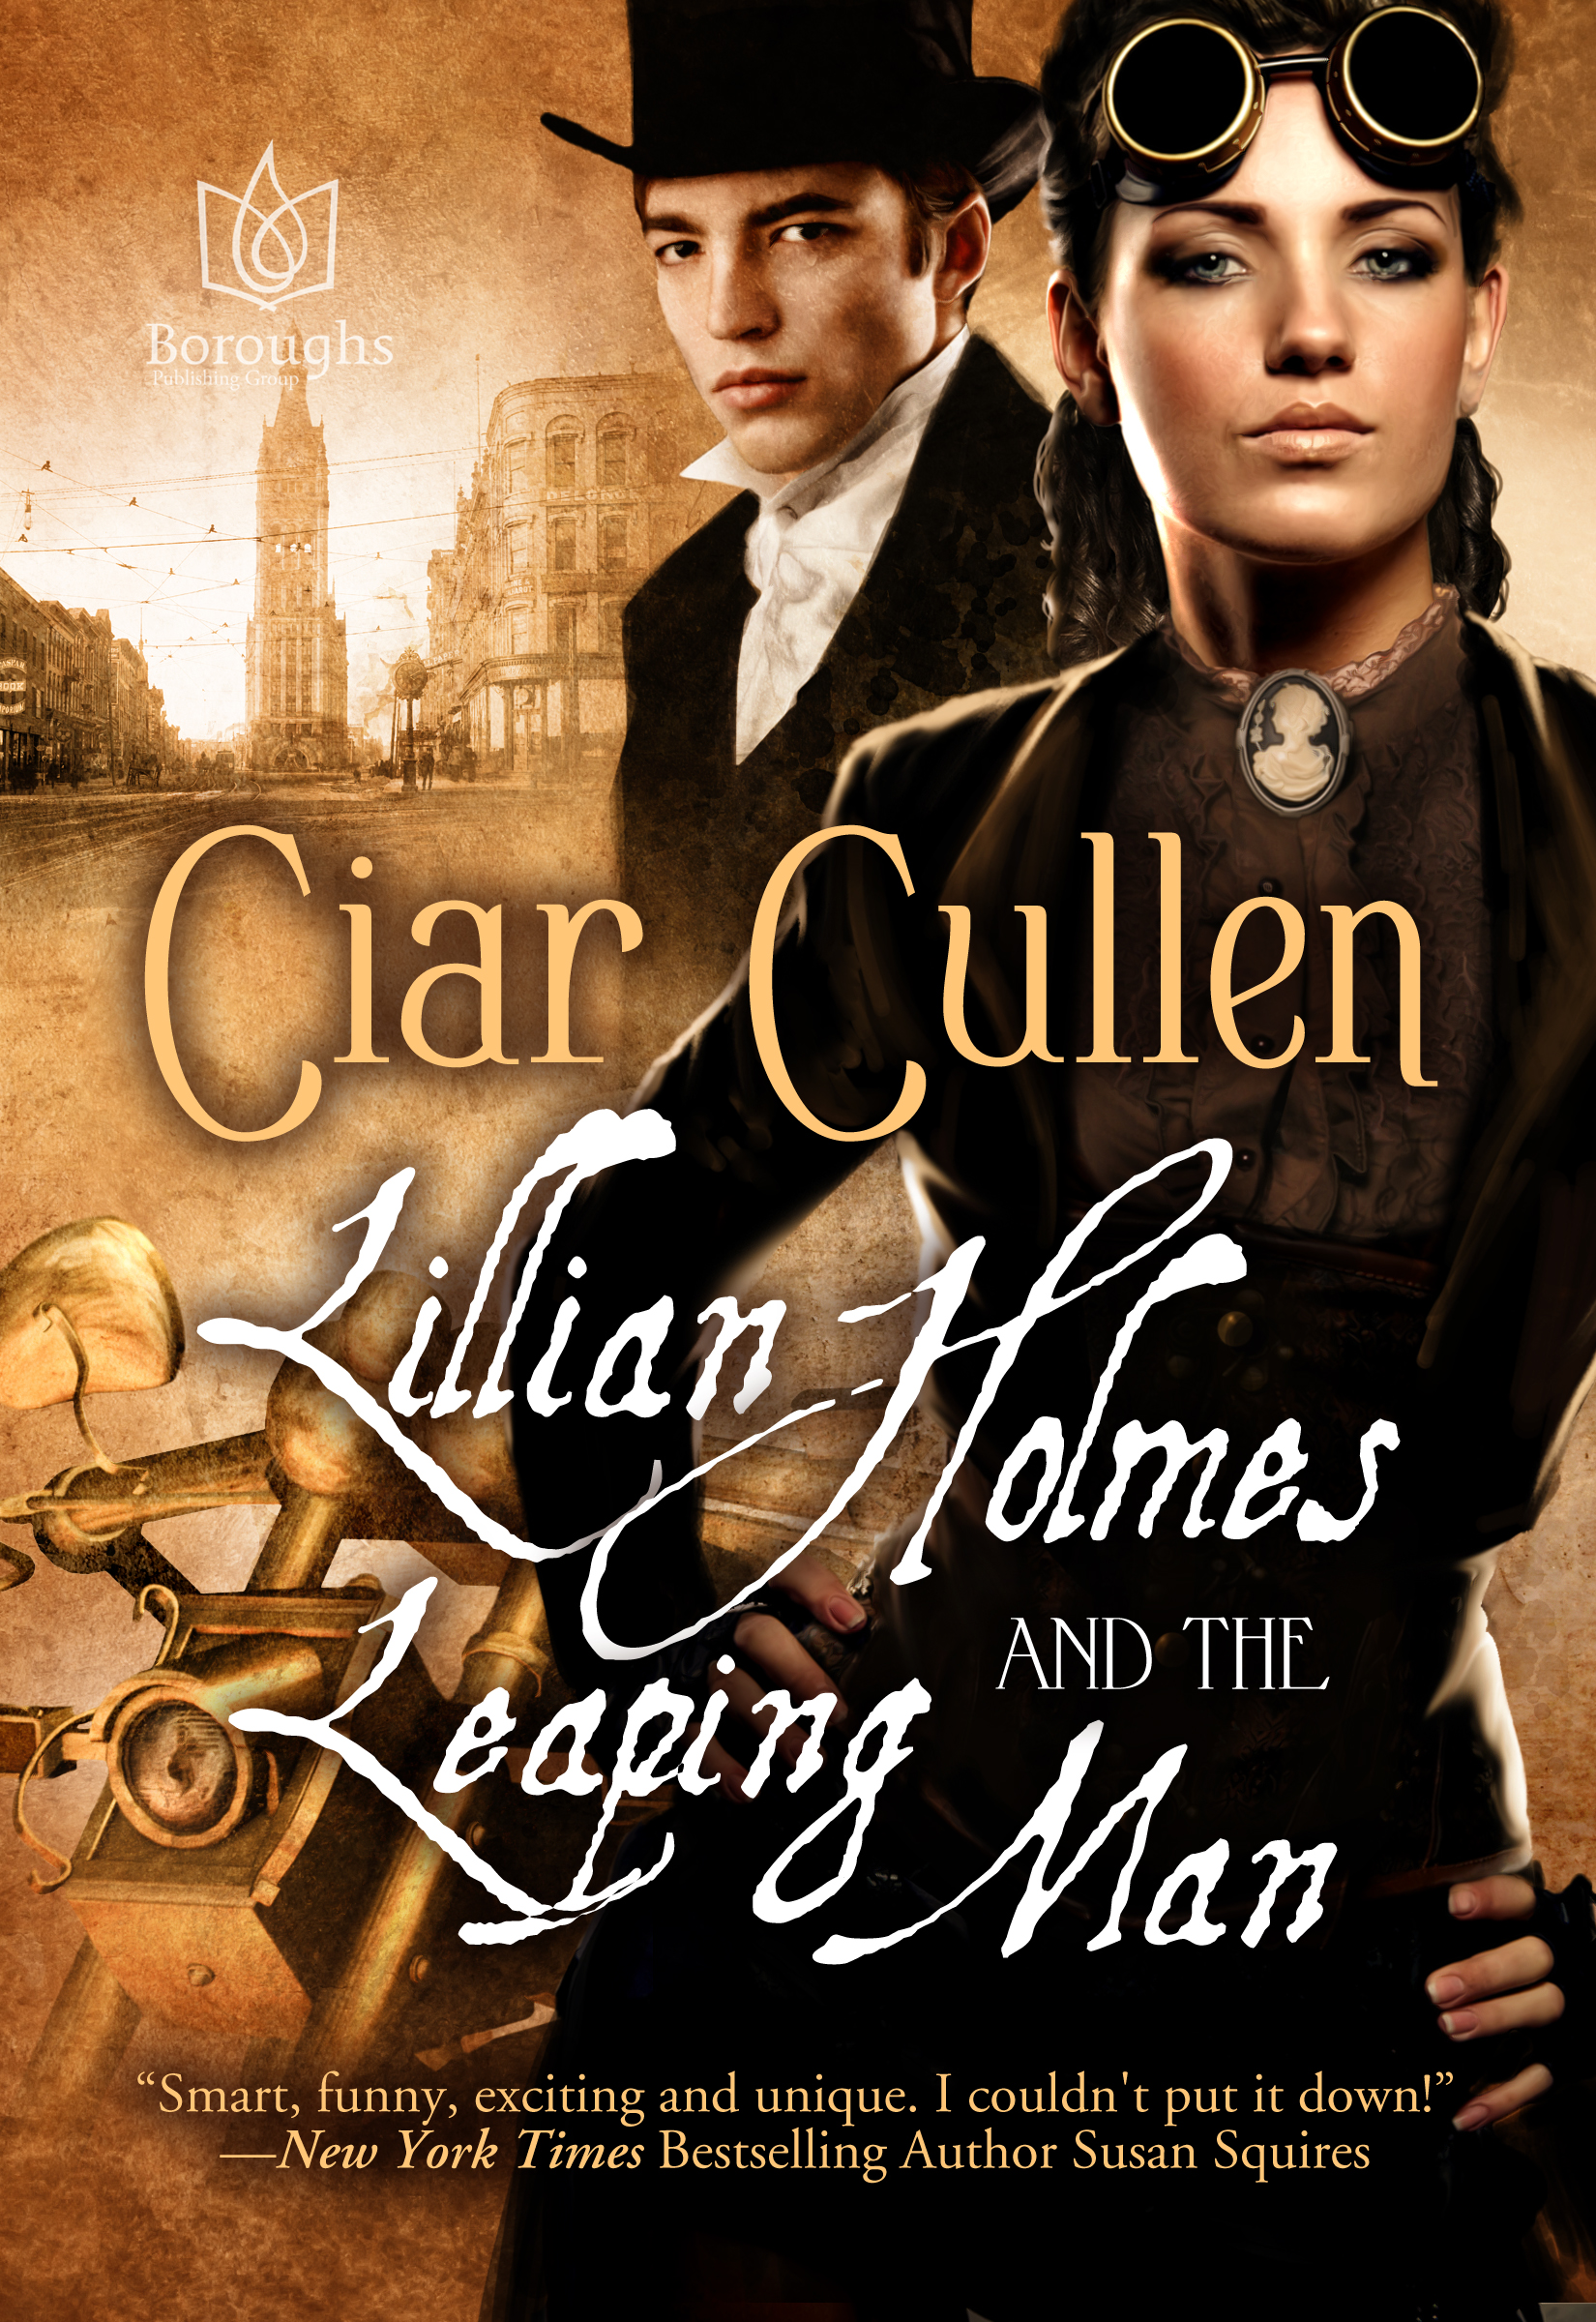 Book Squawk: Lillian Holmes & the Leaping Man Book Tour Announcement